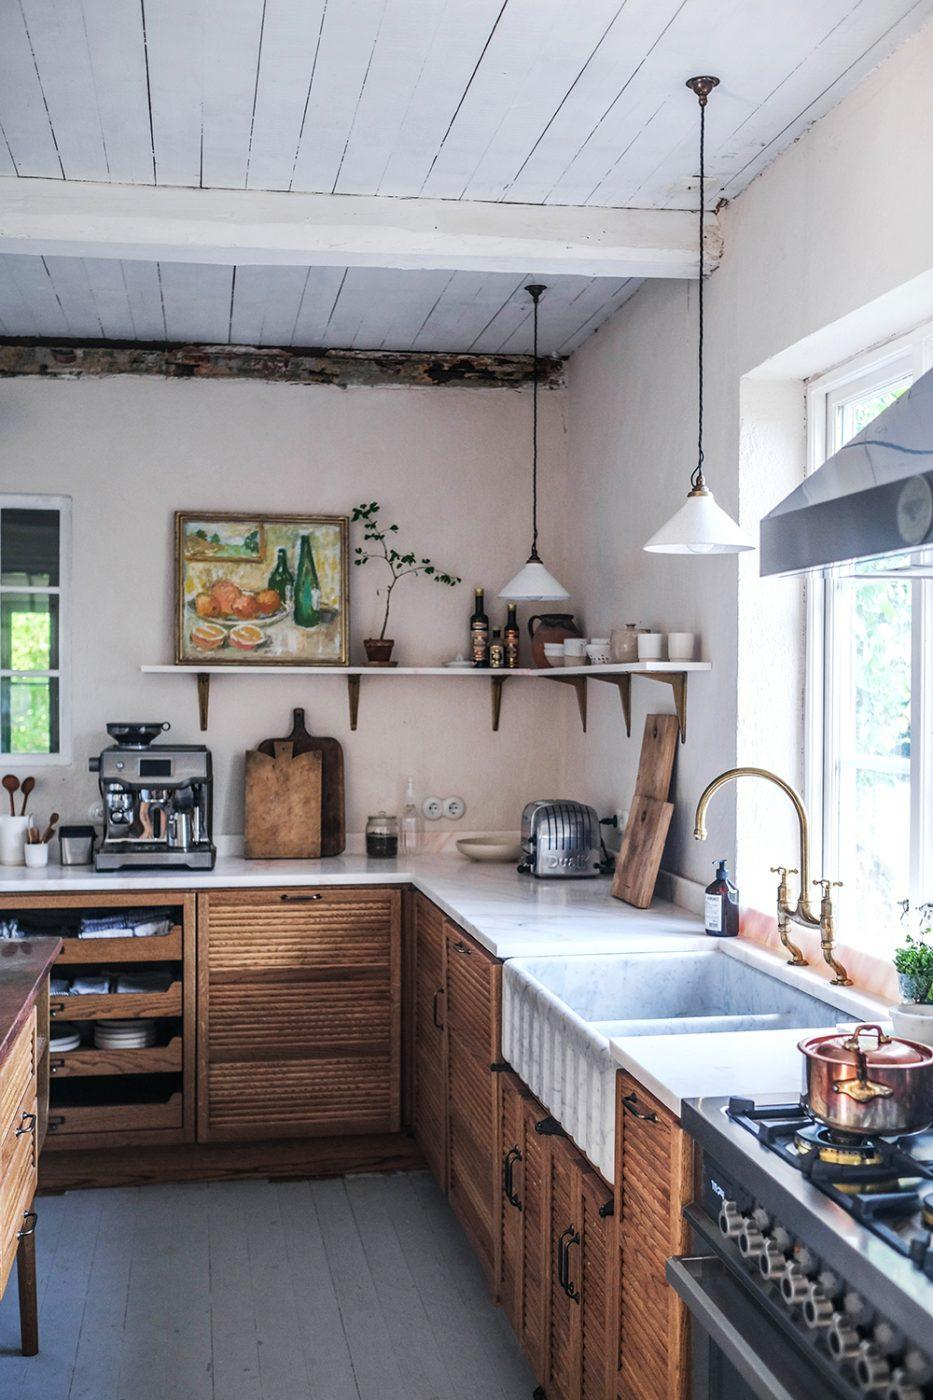 Décor Inspiration: The Most Cosy Mid-Century Kitchen in Sweden